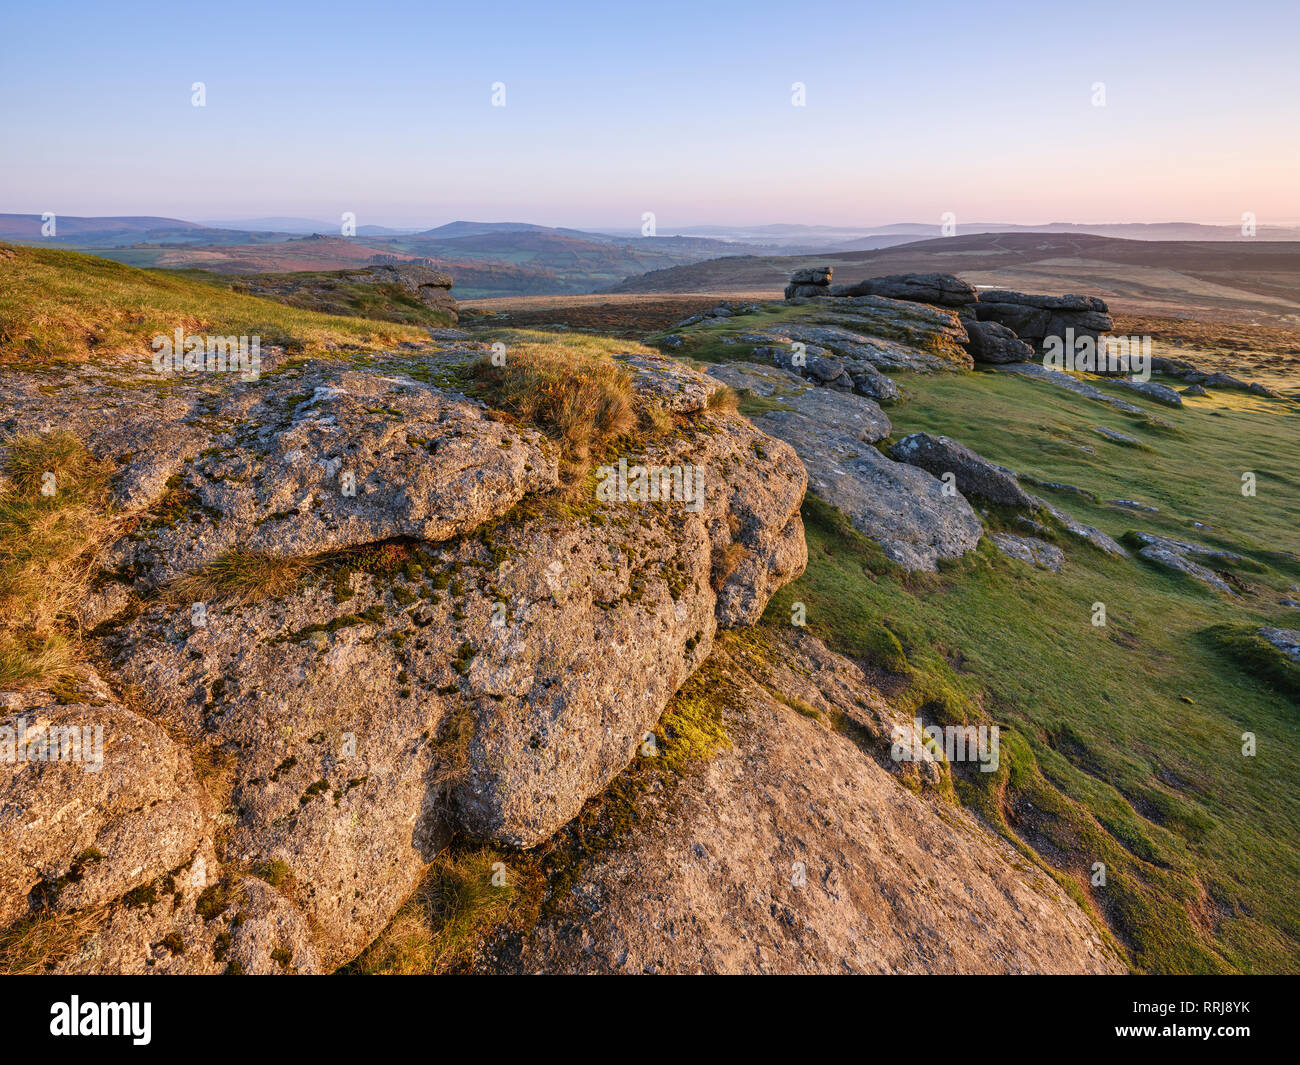 Warm sunlight on the granite summit of Saddle Tor in Dartmoor National Park, Bovey Tracey, Devon, England, United Kingdom, Europe - Stock Image